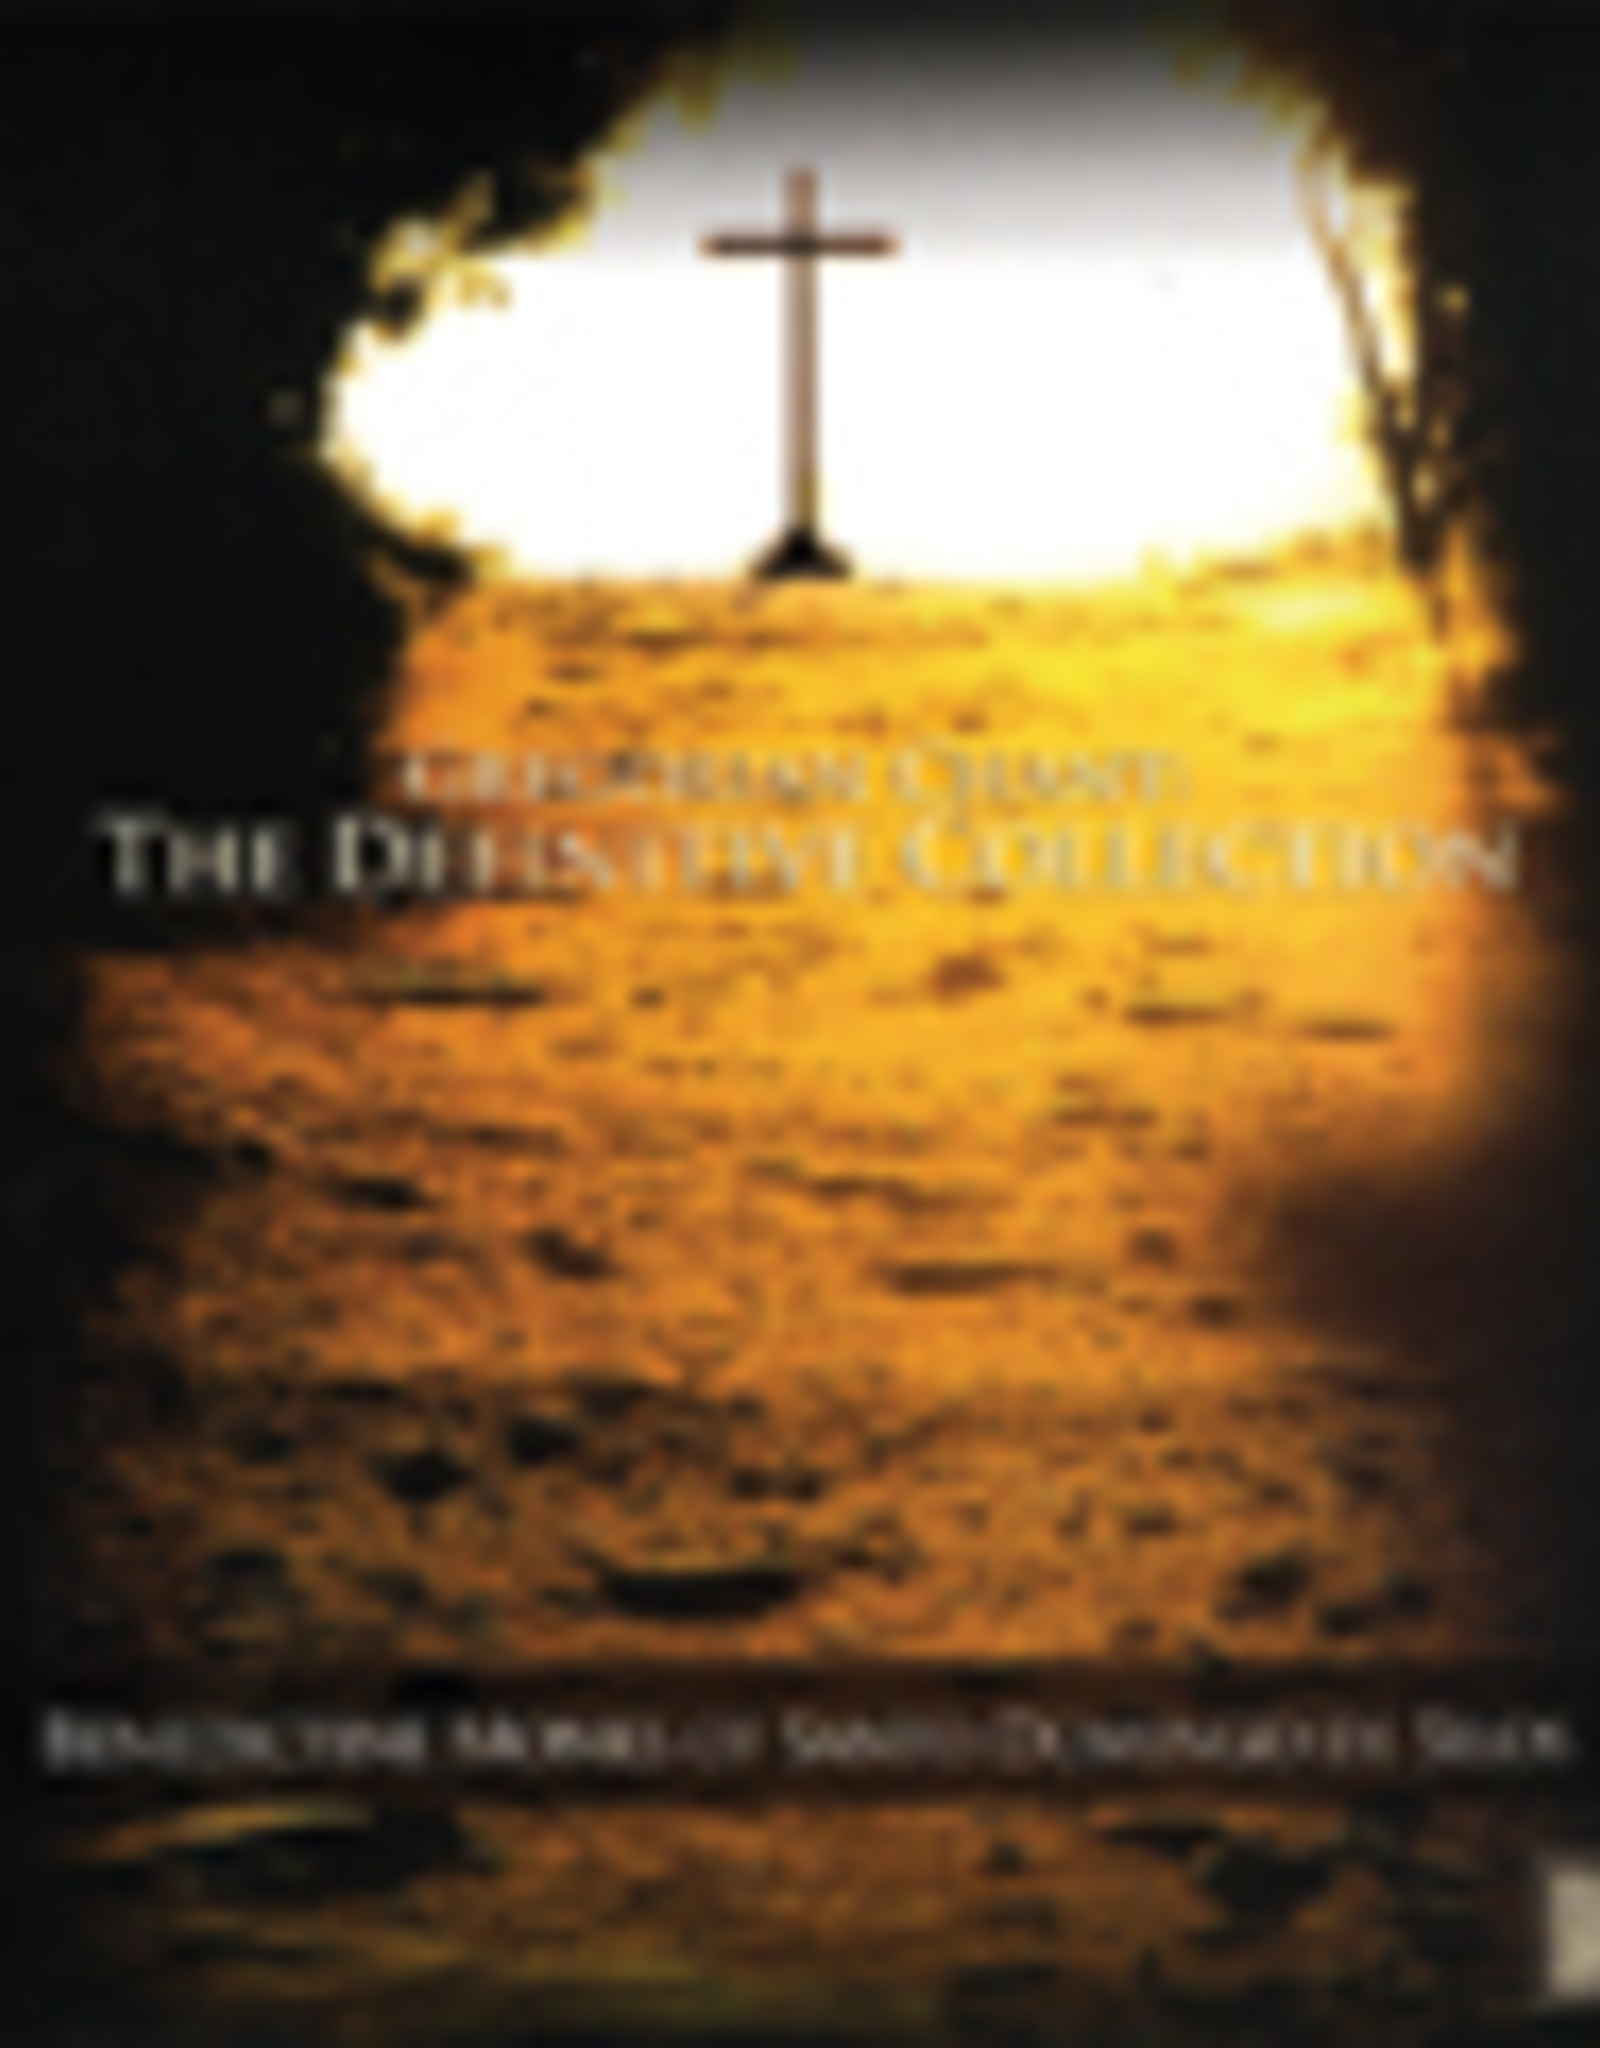 Ignatius Press Gregorian Chant:  The Definitive Collection, by the Benedictine Monks of Santo Domingo Silos